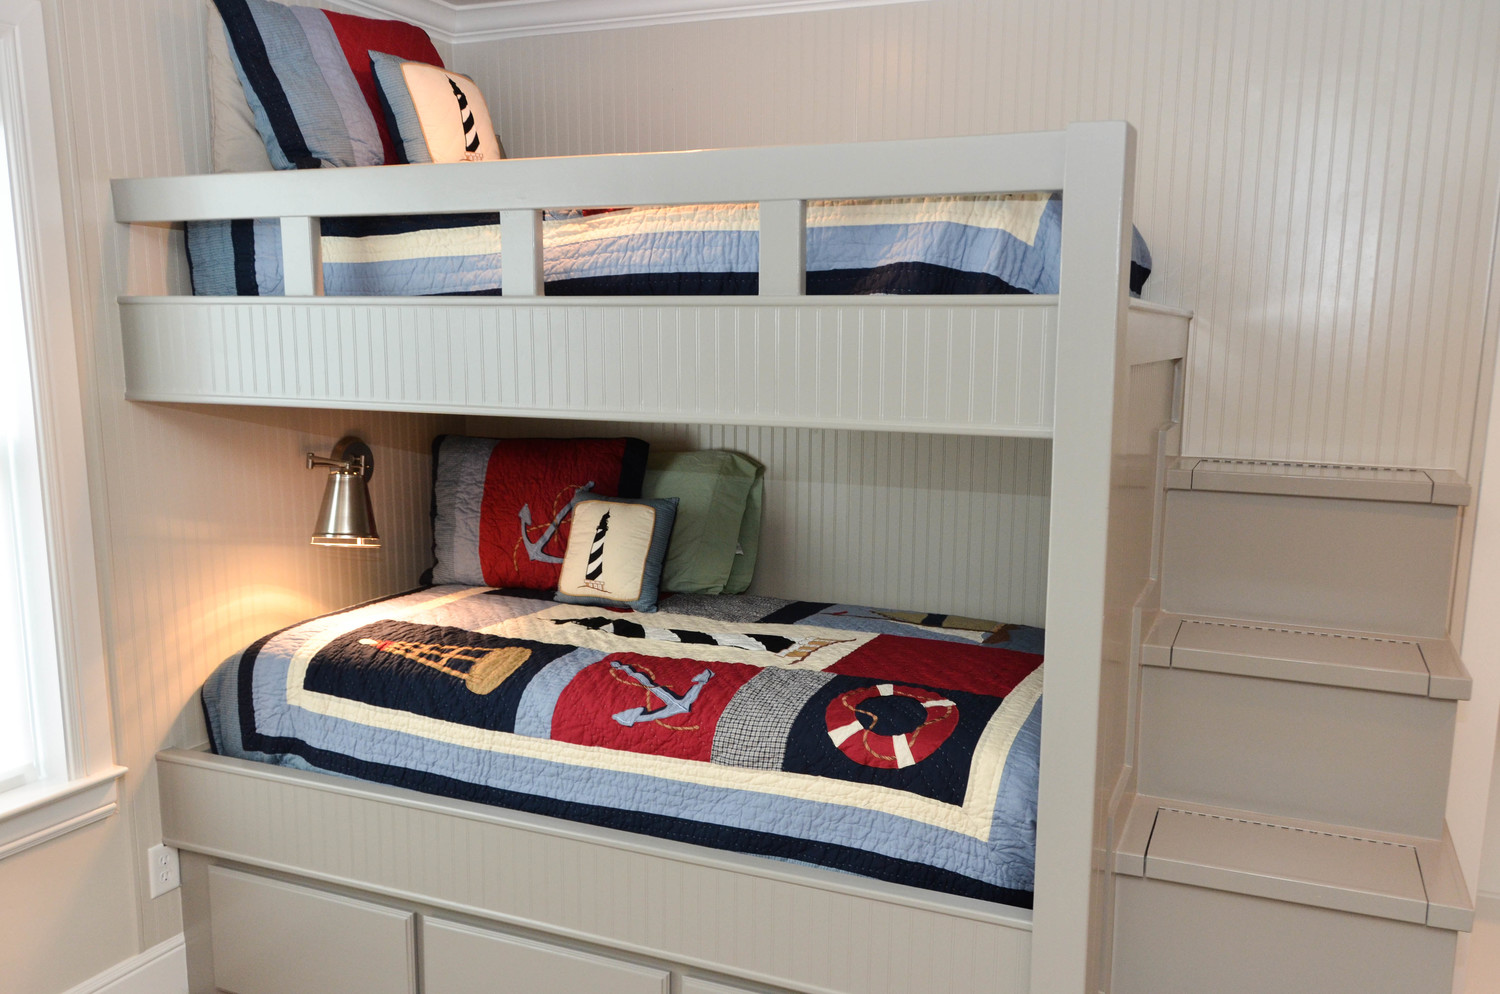 Build in bunk bed room at a lake house vacation home. Boat themed guest bedroom